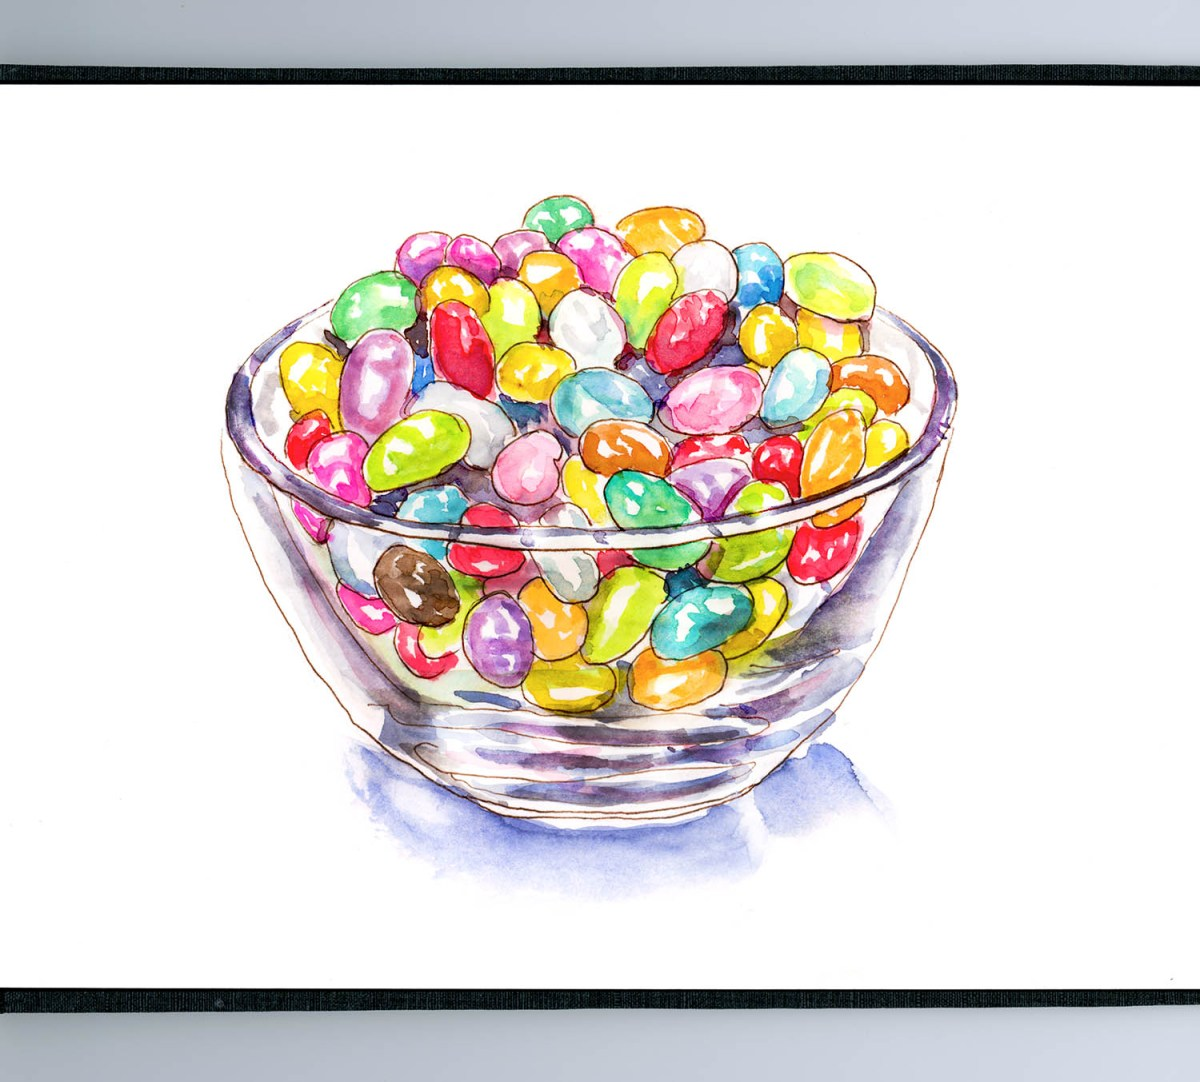 #WorldWatercolorGroup - Day 23 - Snacking On Jelly Beans - Doodlewash